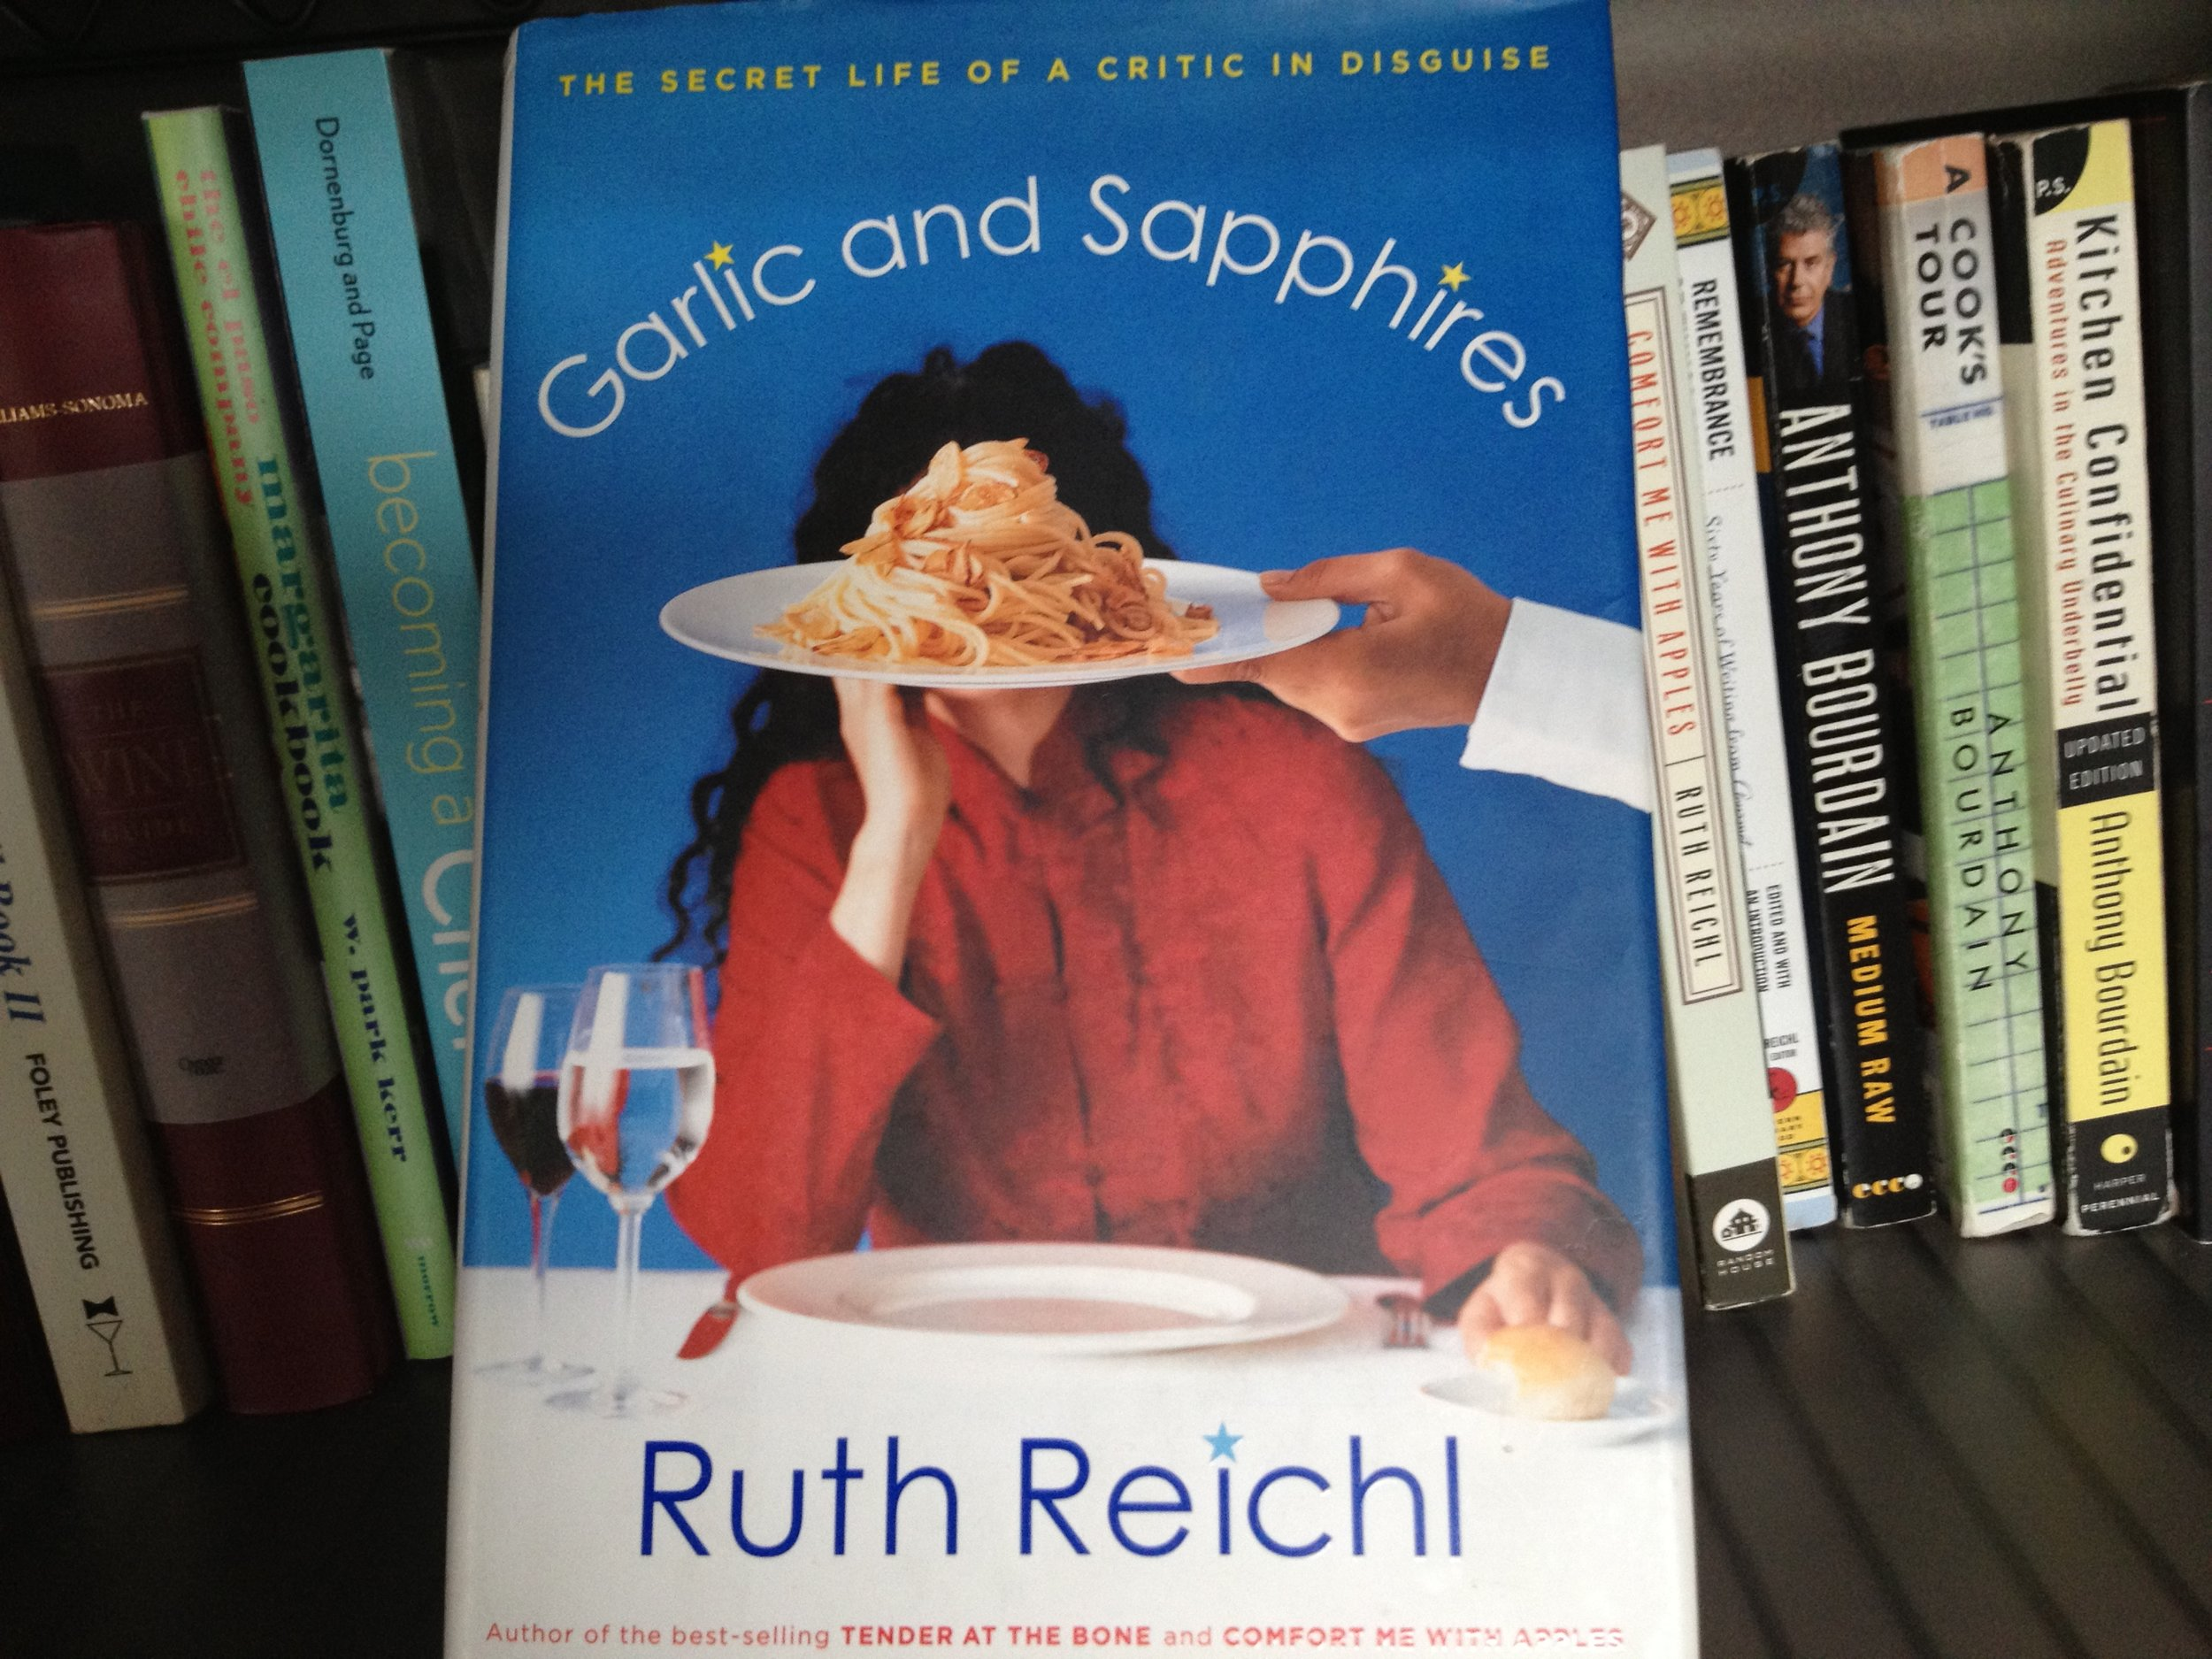 The book that started my obsession with Ruth Reichl.